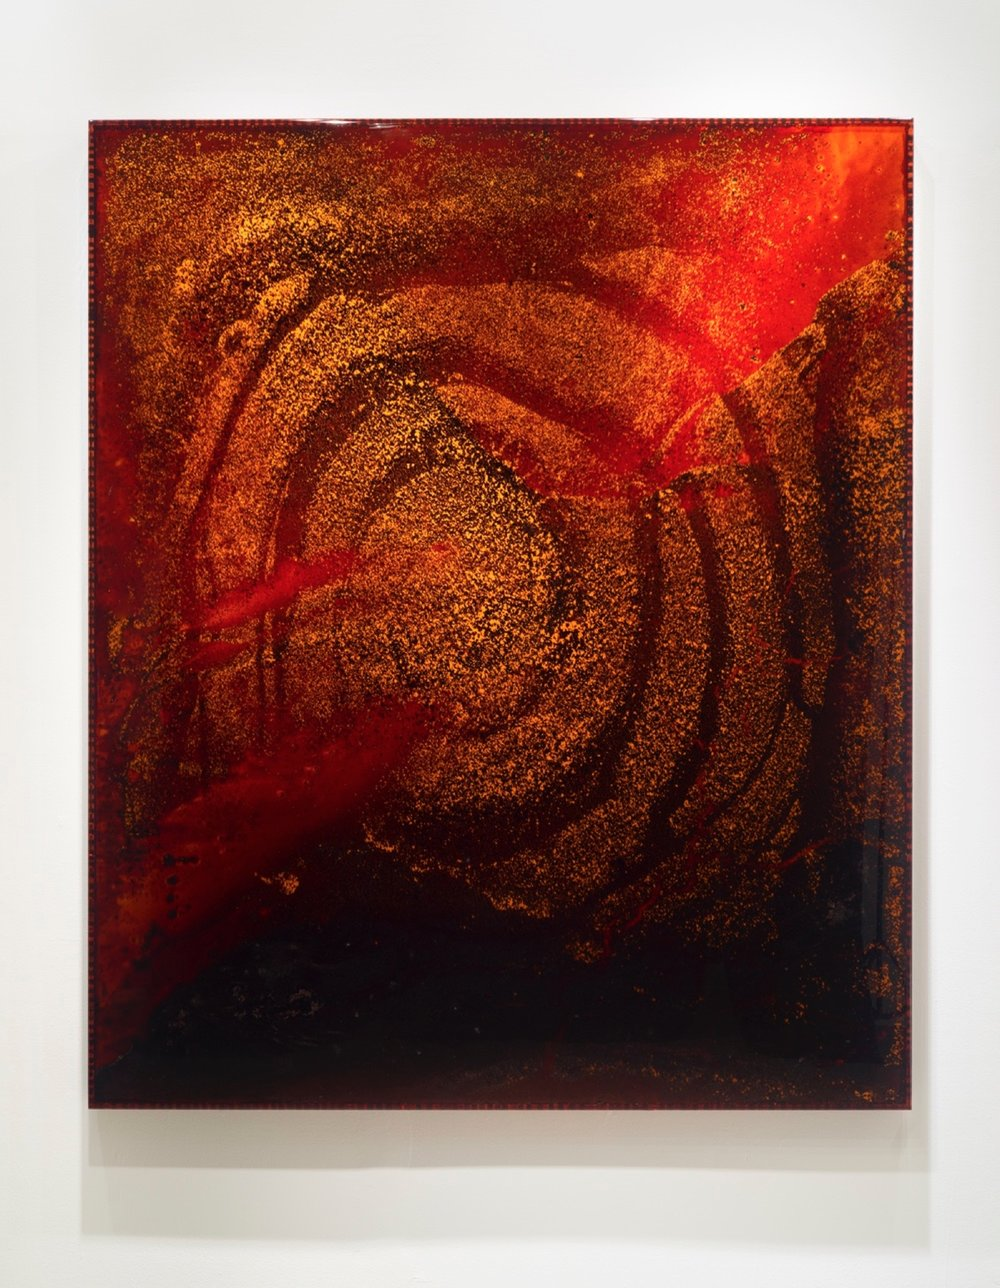 "RED GIANT 5, 2011 72 x 60 x 3"" sun-dried blood preserved on plexiglass, UV resin, copper backing"